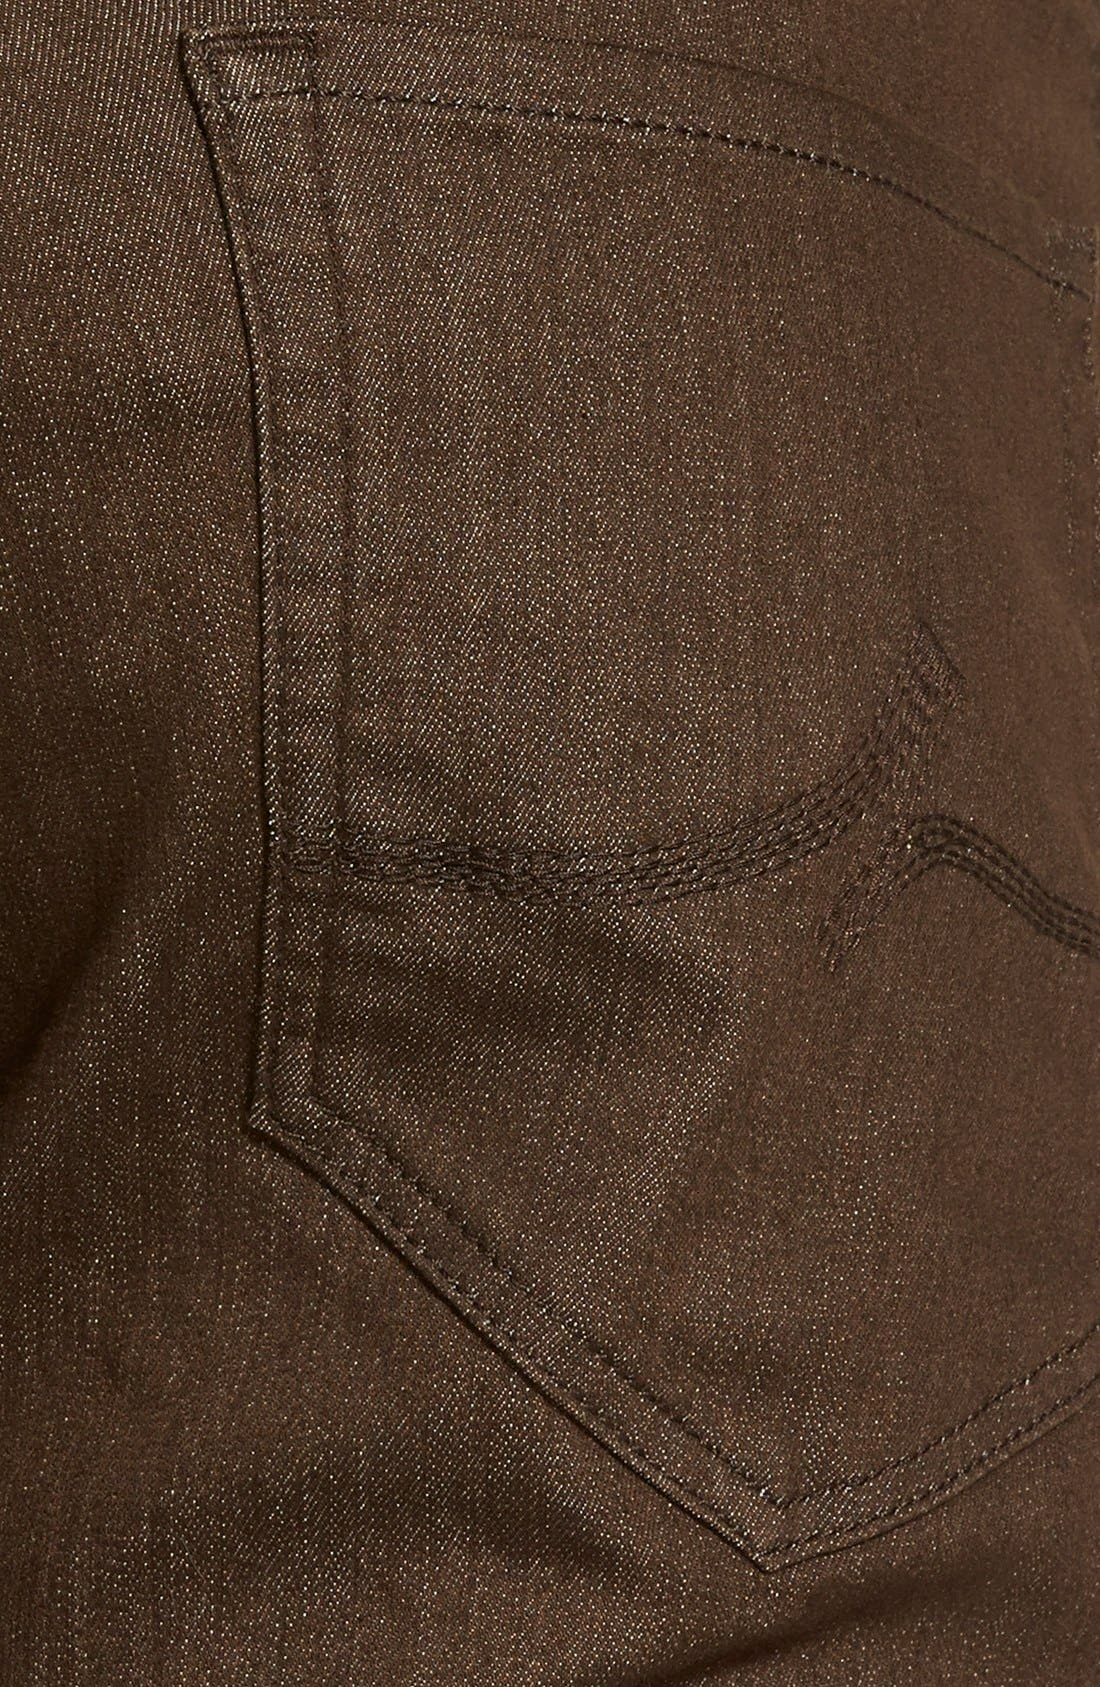 'Charisma' Relaxed Fit Jeans,                             Alternate thumbnail 4, color,                             Brown Comfort